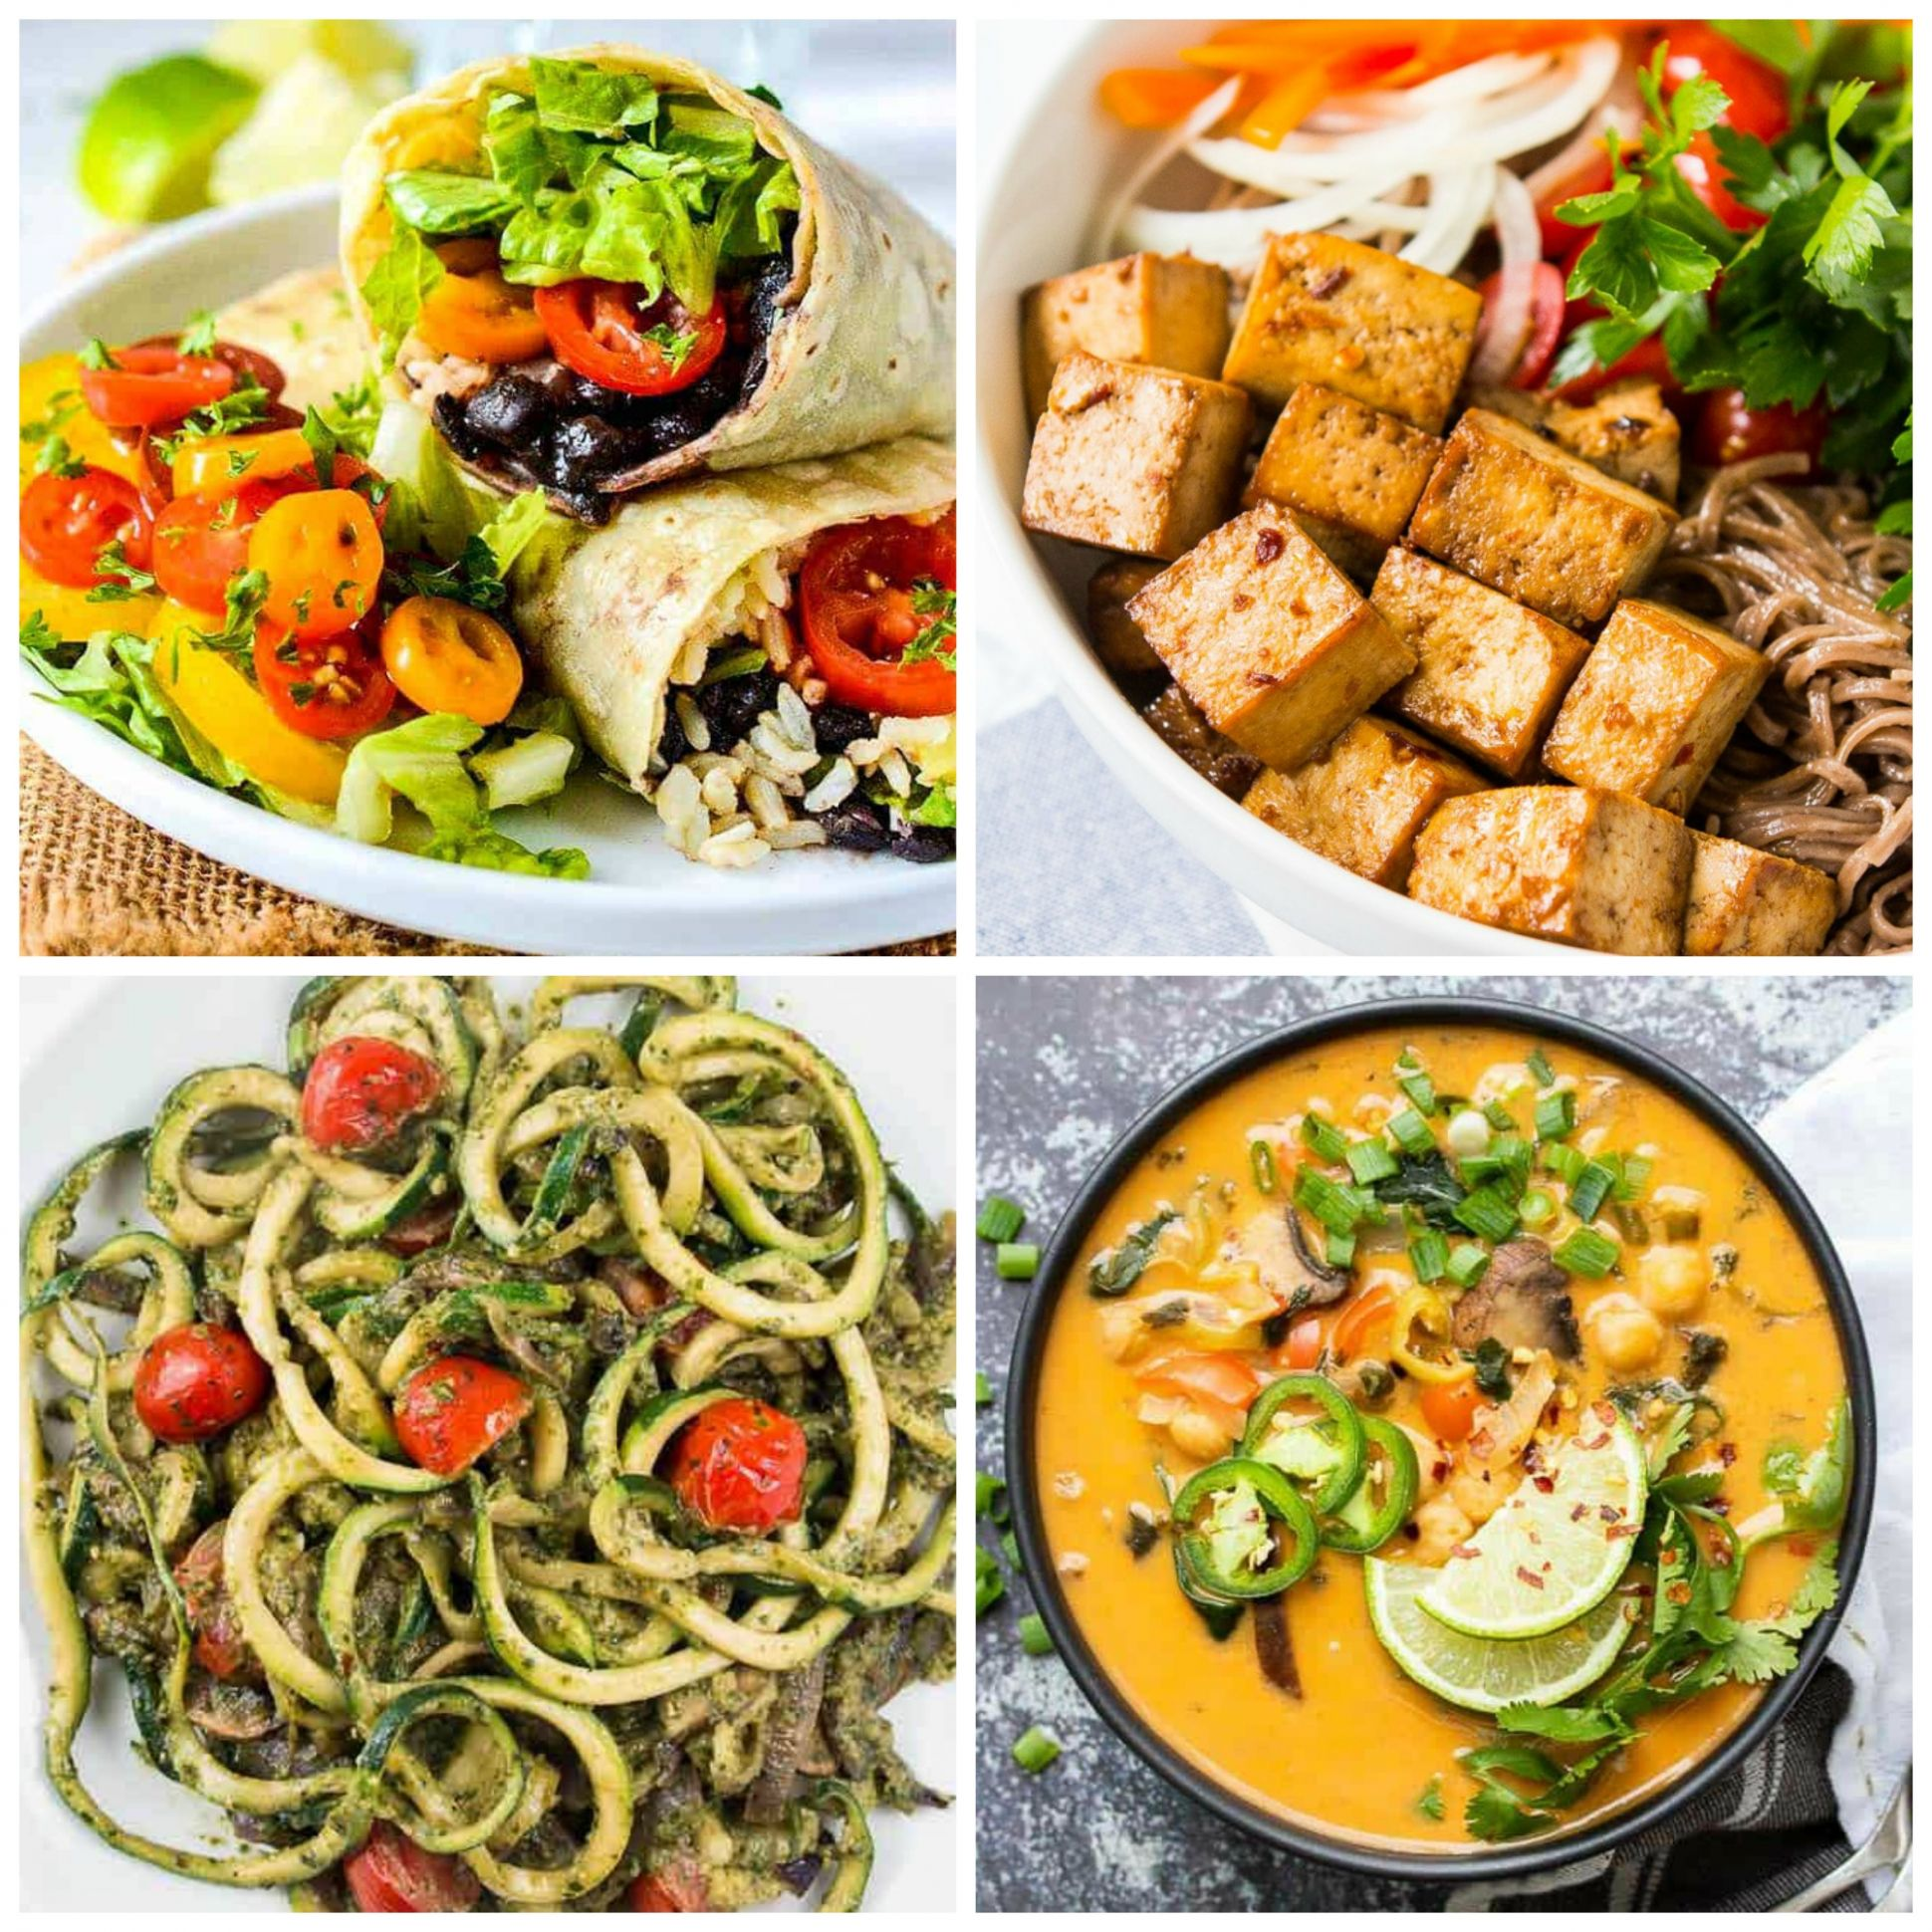 11 AMAZING Vegan Meals for Weight Loss (Gluten-Free & Low-Calorie) - Weight Loss Recipes Gluten Free